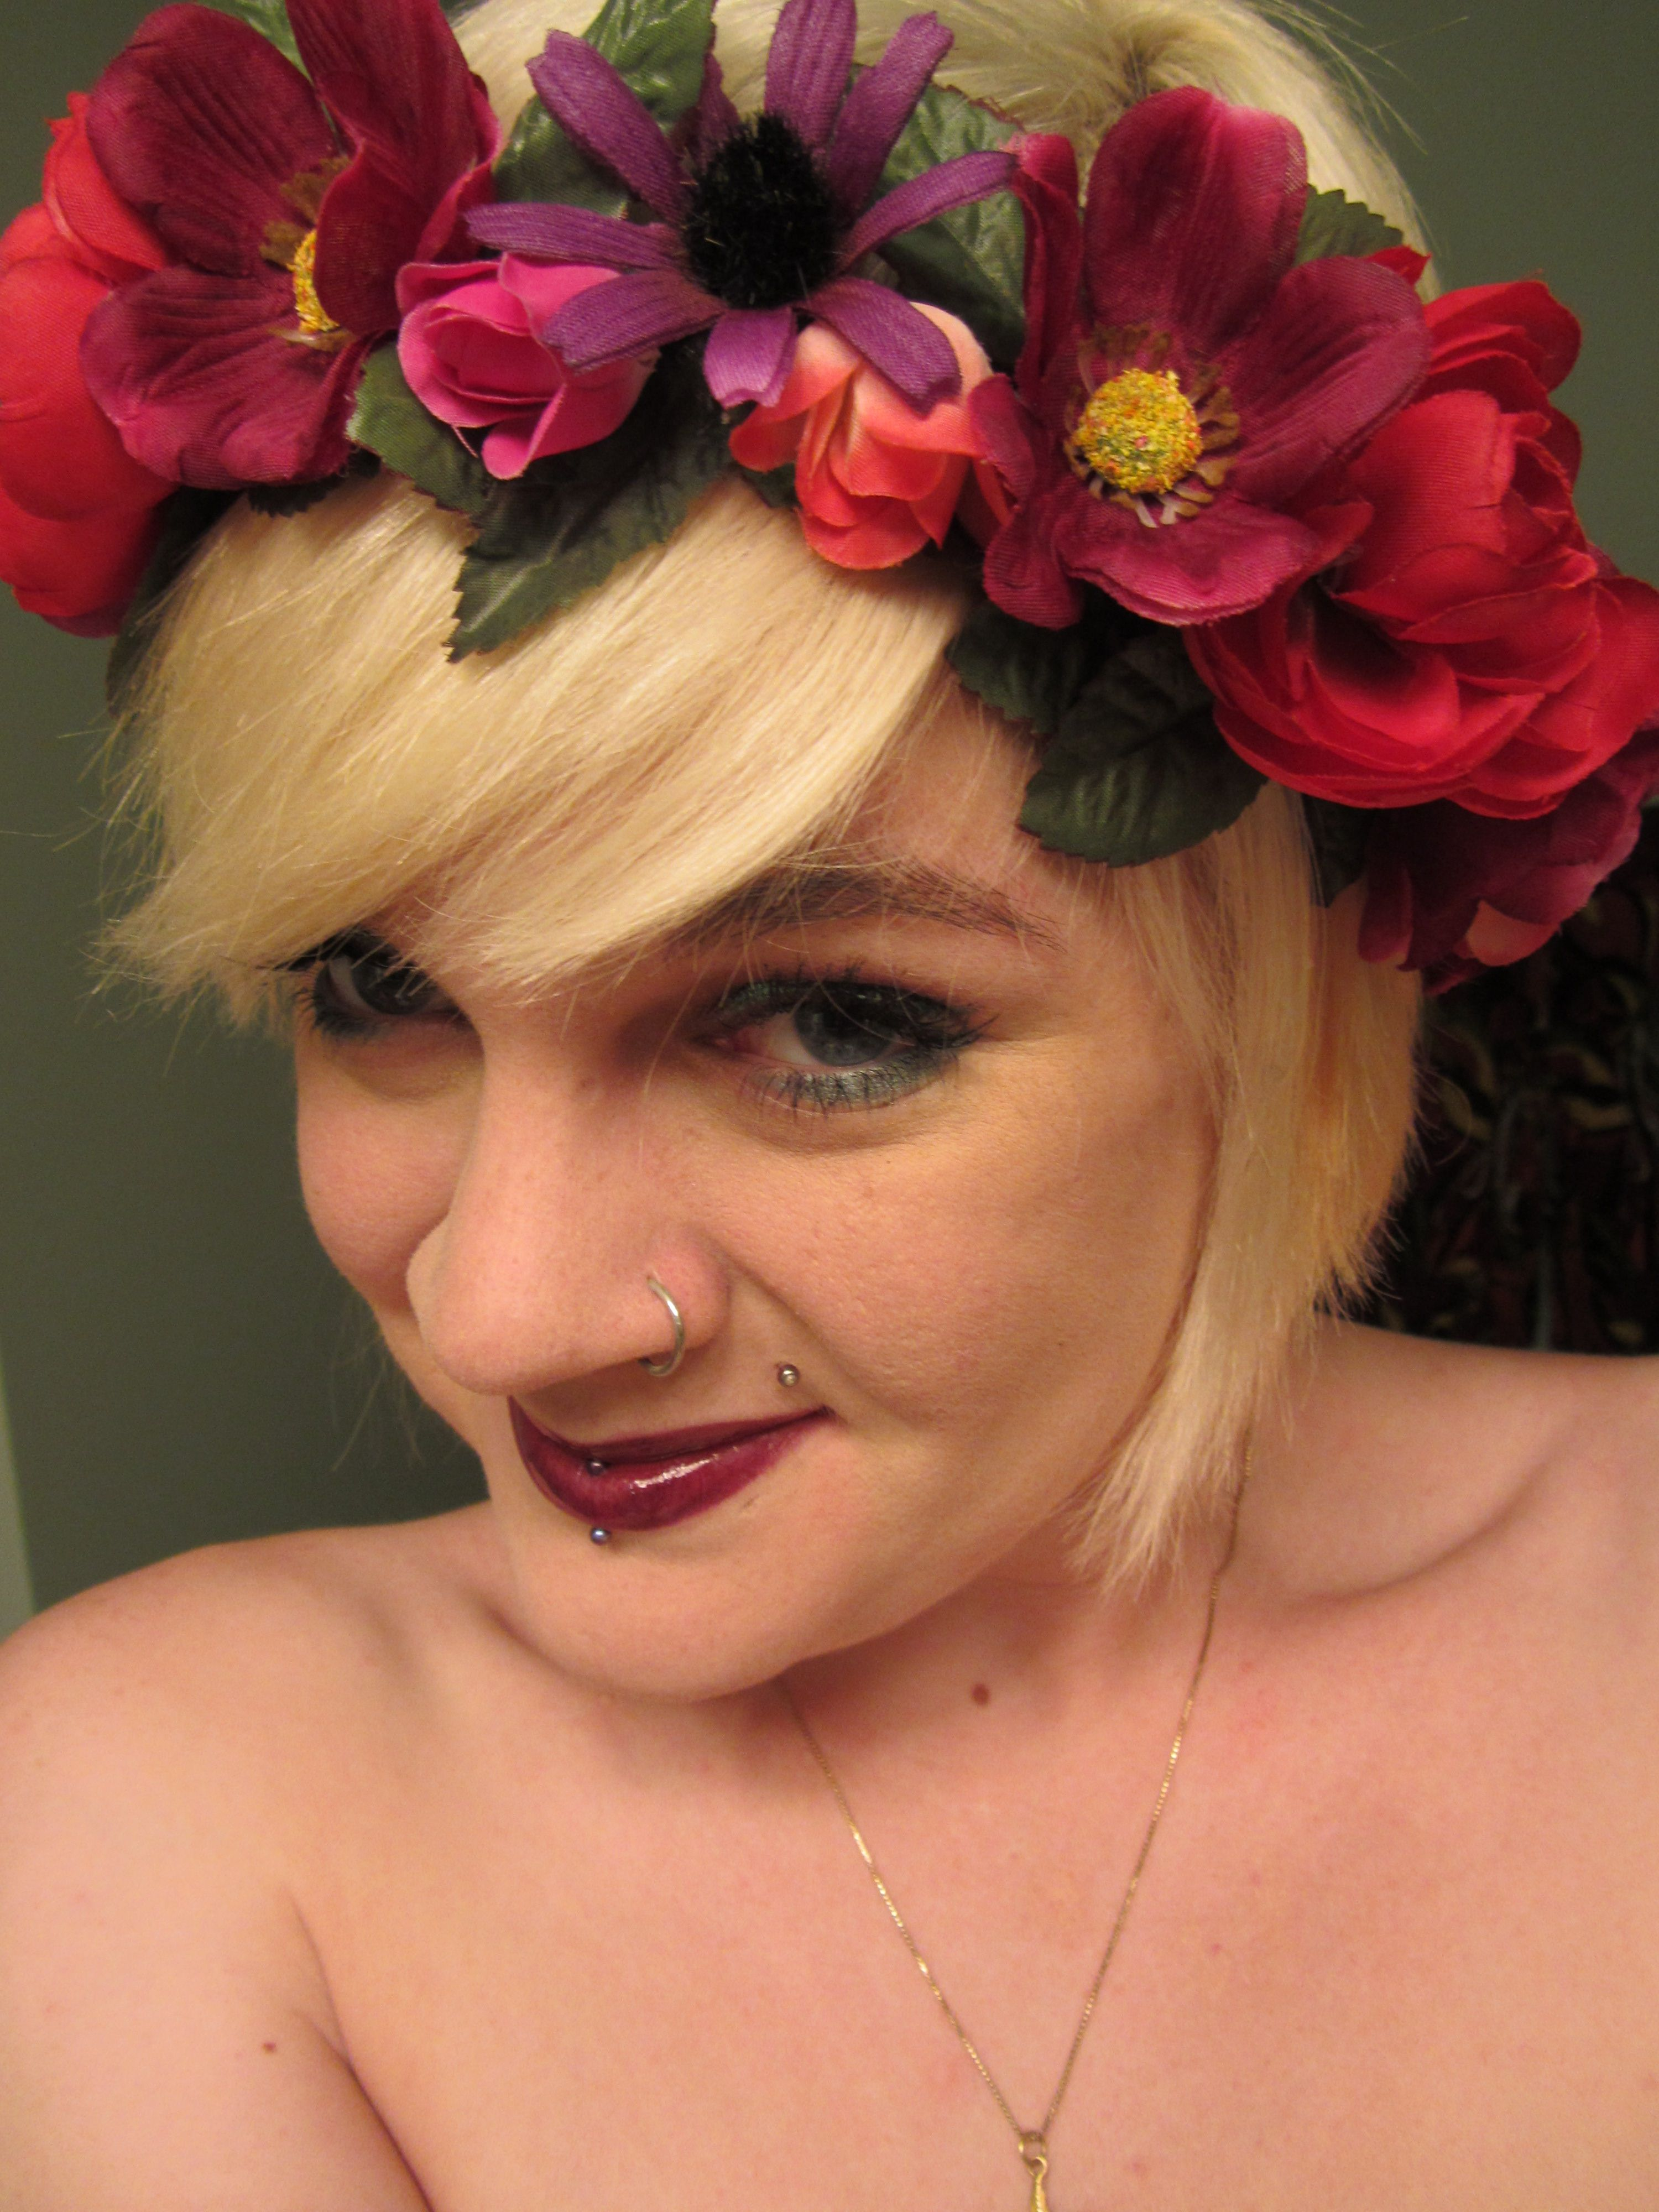 Zombie wedding decorations  Floral headpiece designed by Morrigan Parker  Wedding thoughts